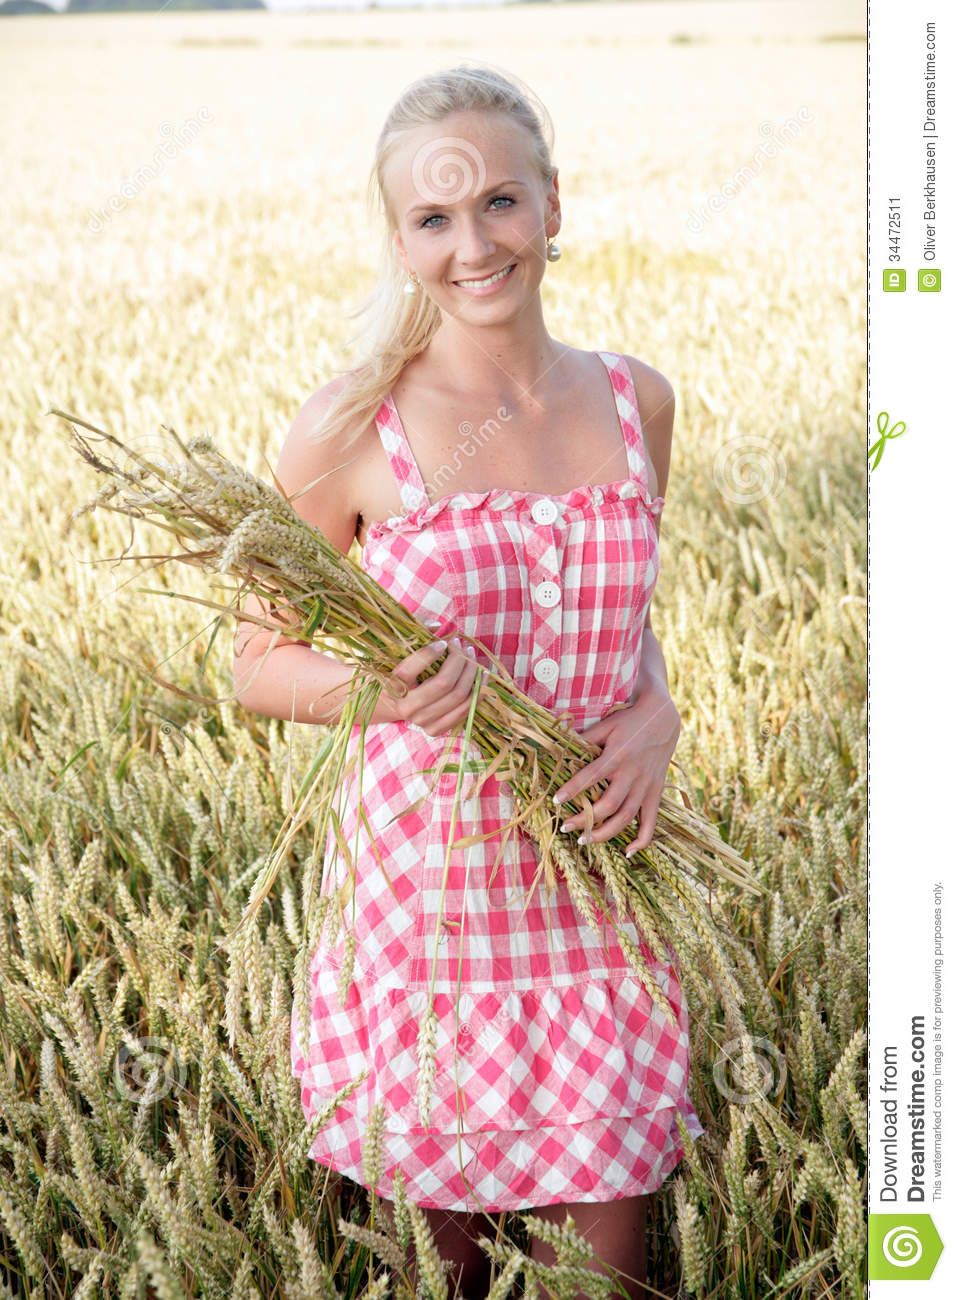 Young Woman In A Corn Field Stock Image - Image: 34472511